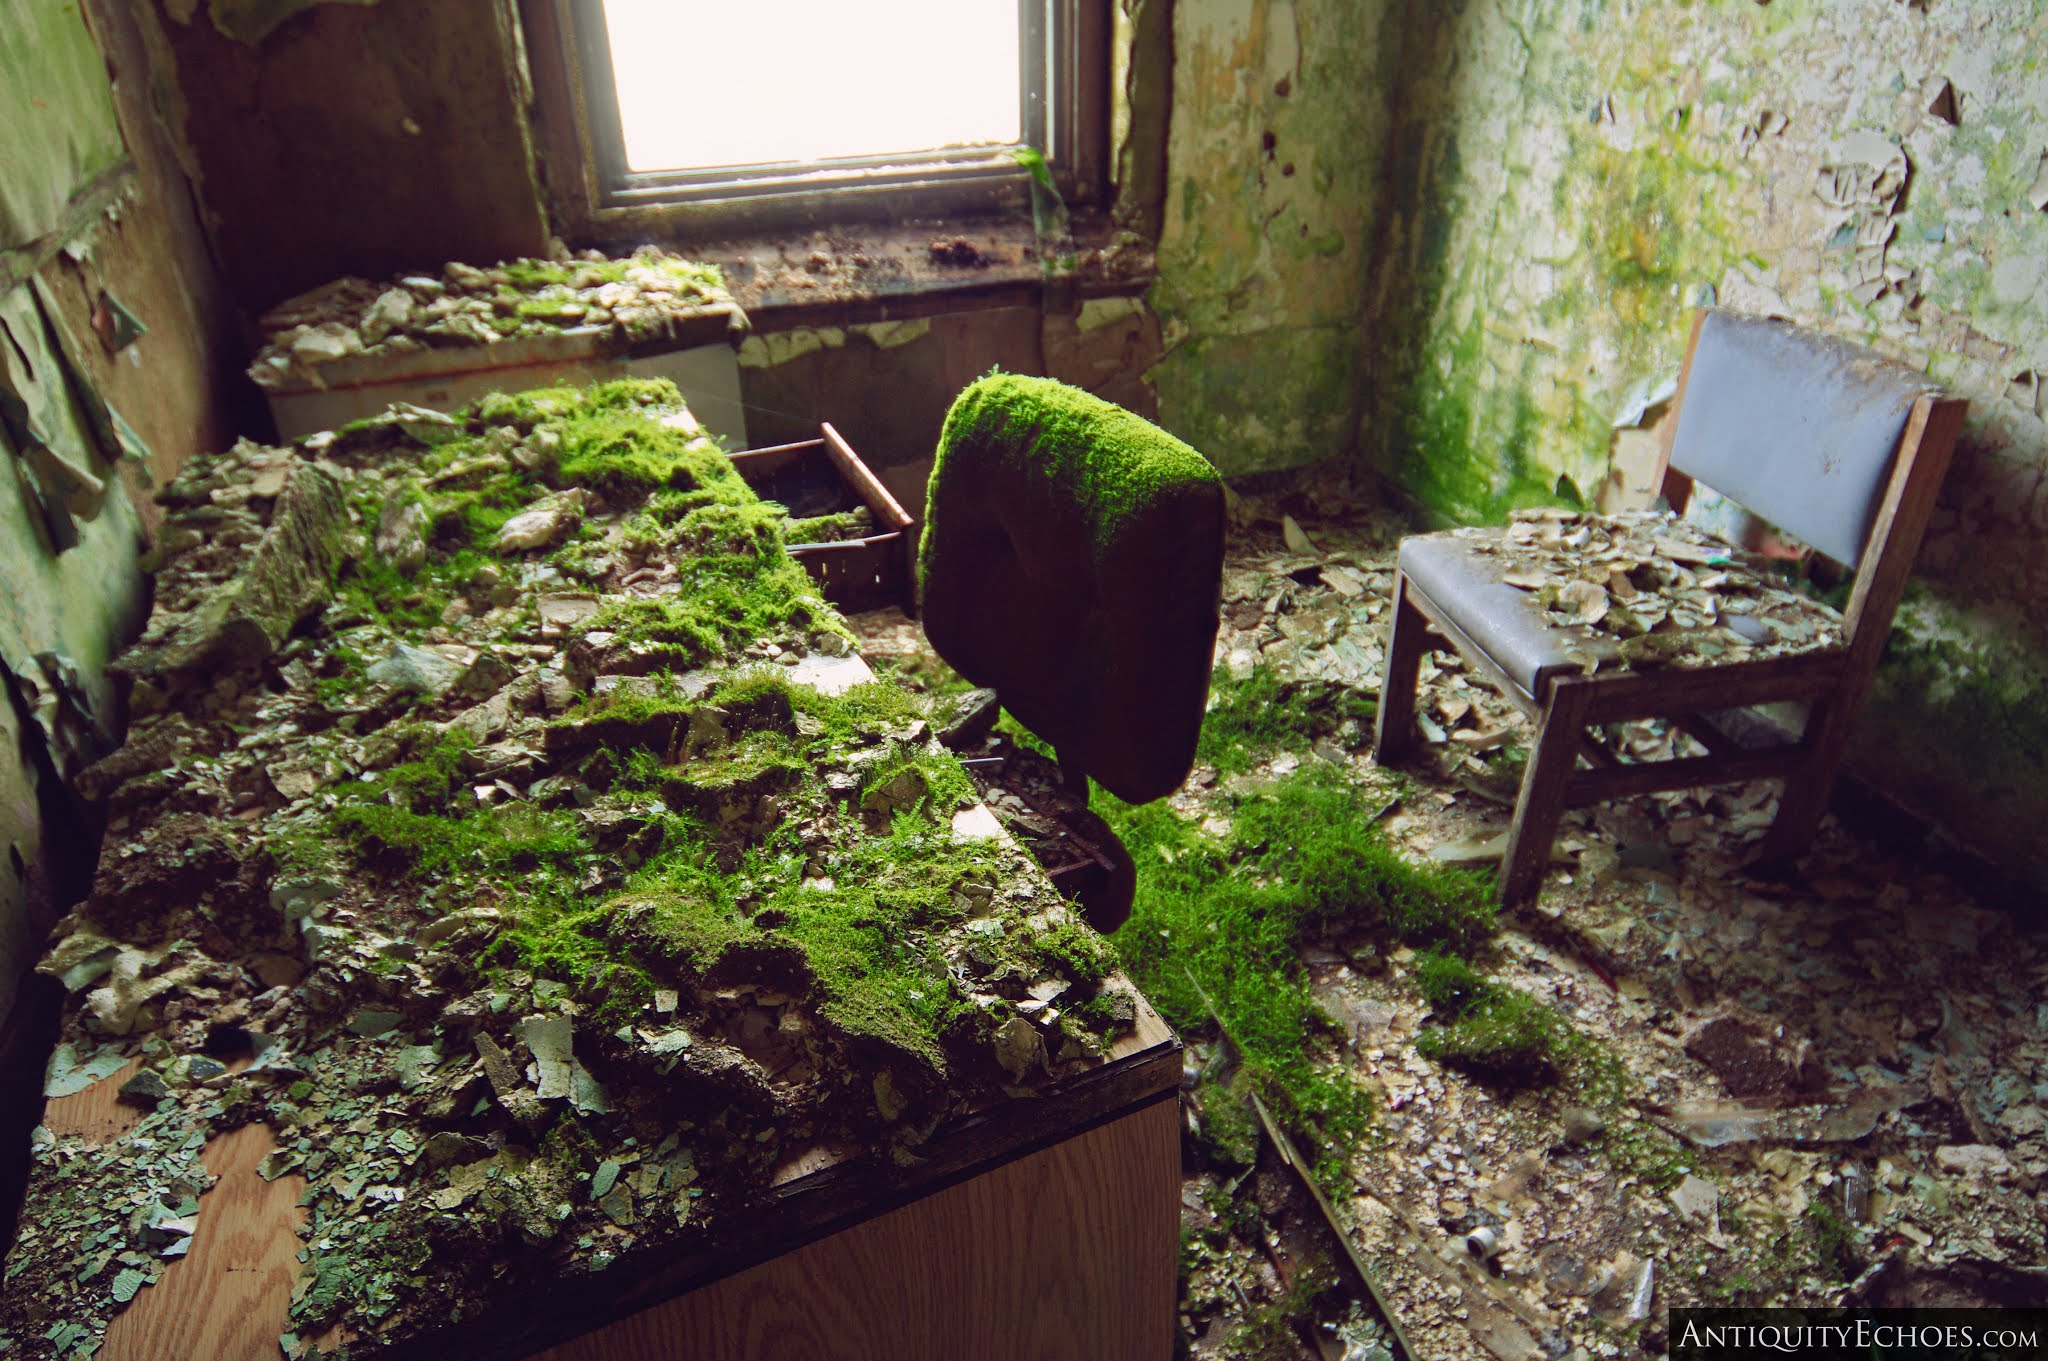 Overbrook Asylum - Moss Covered Office